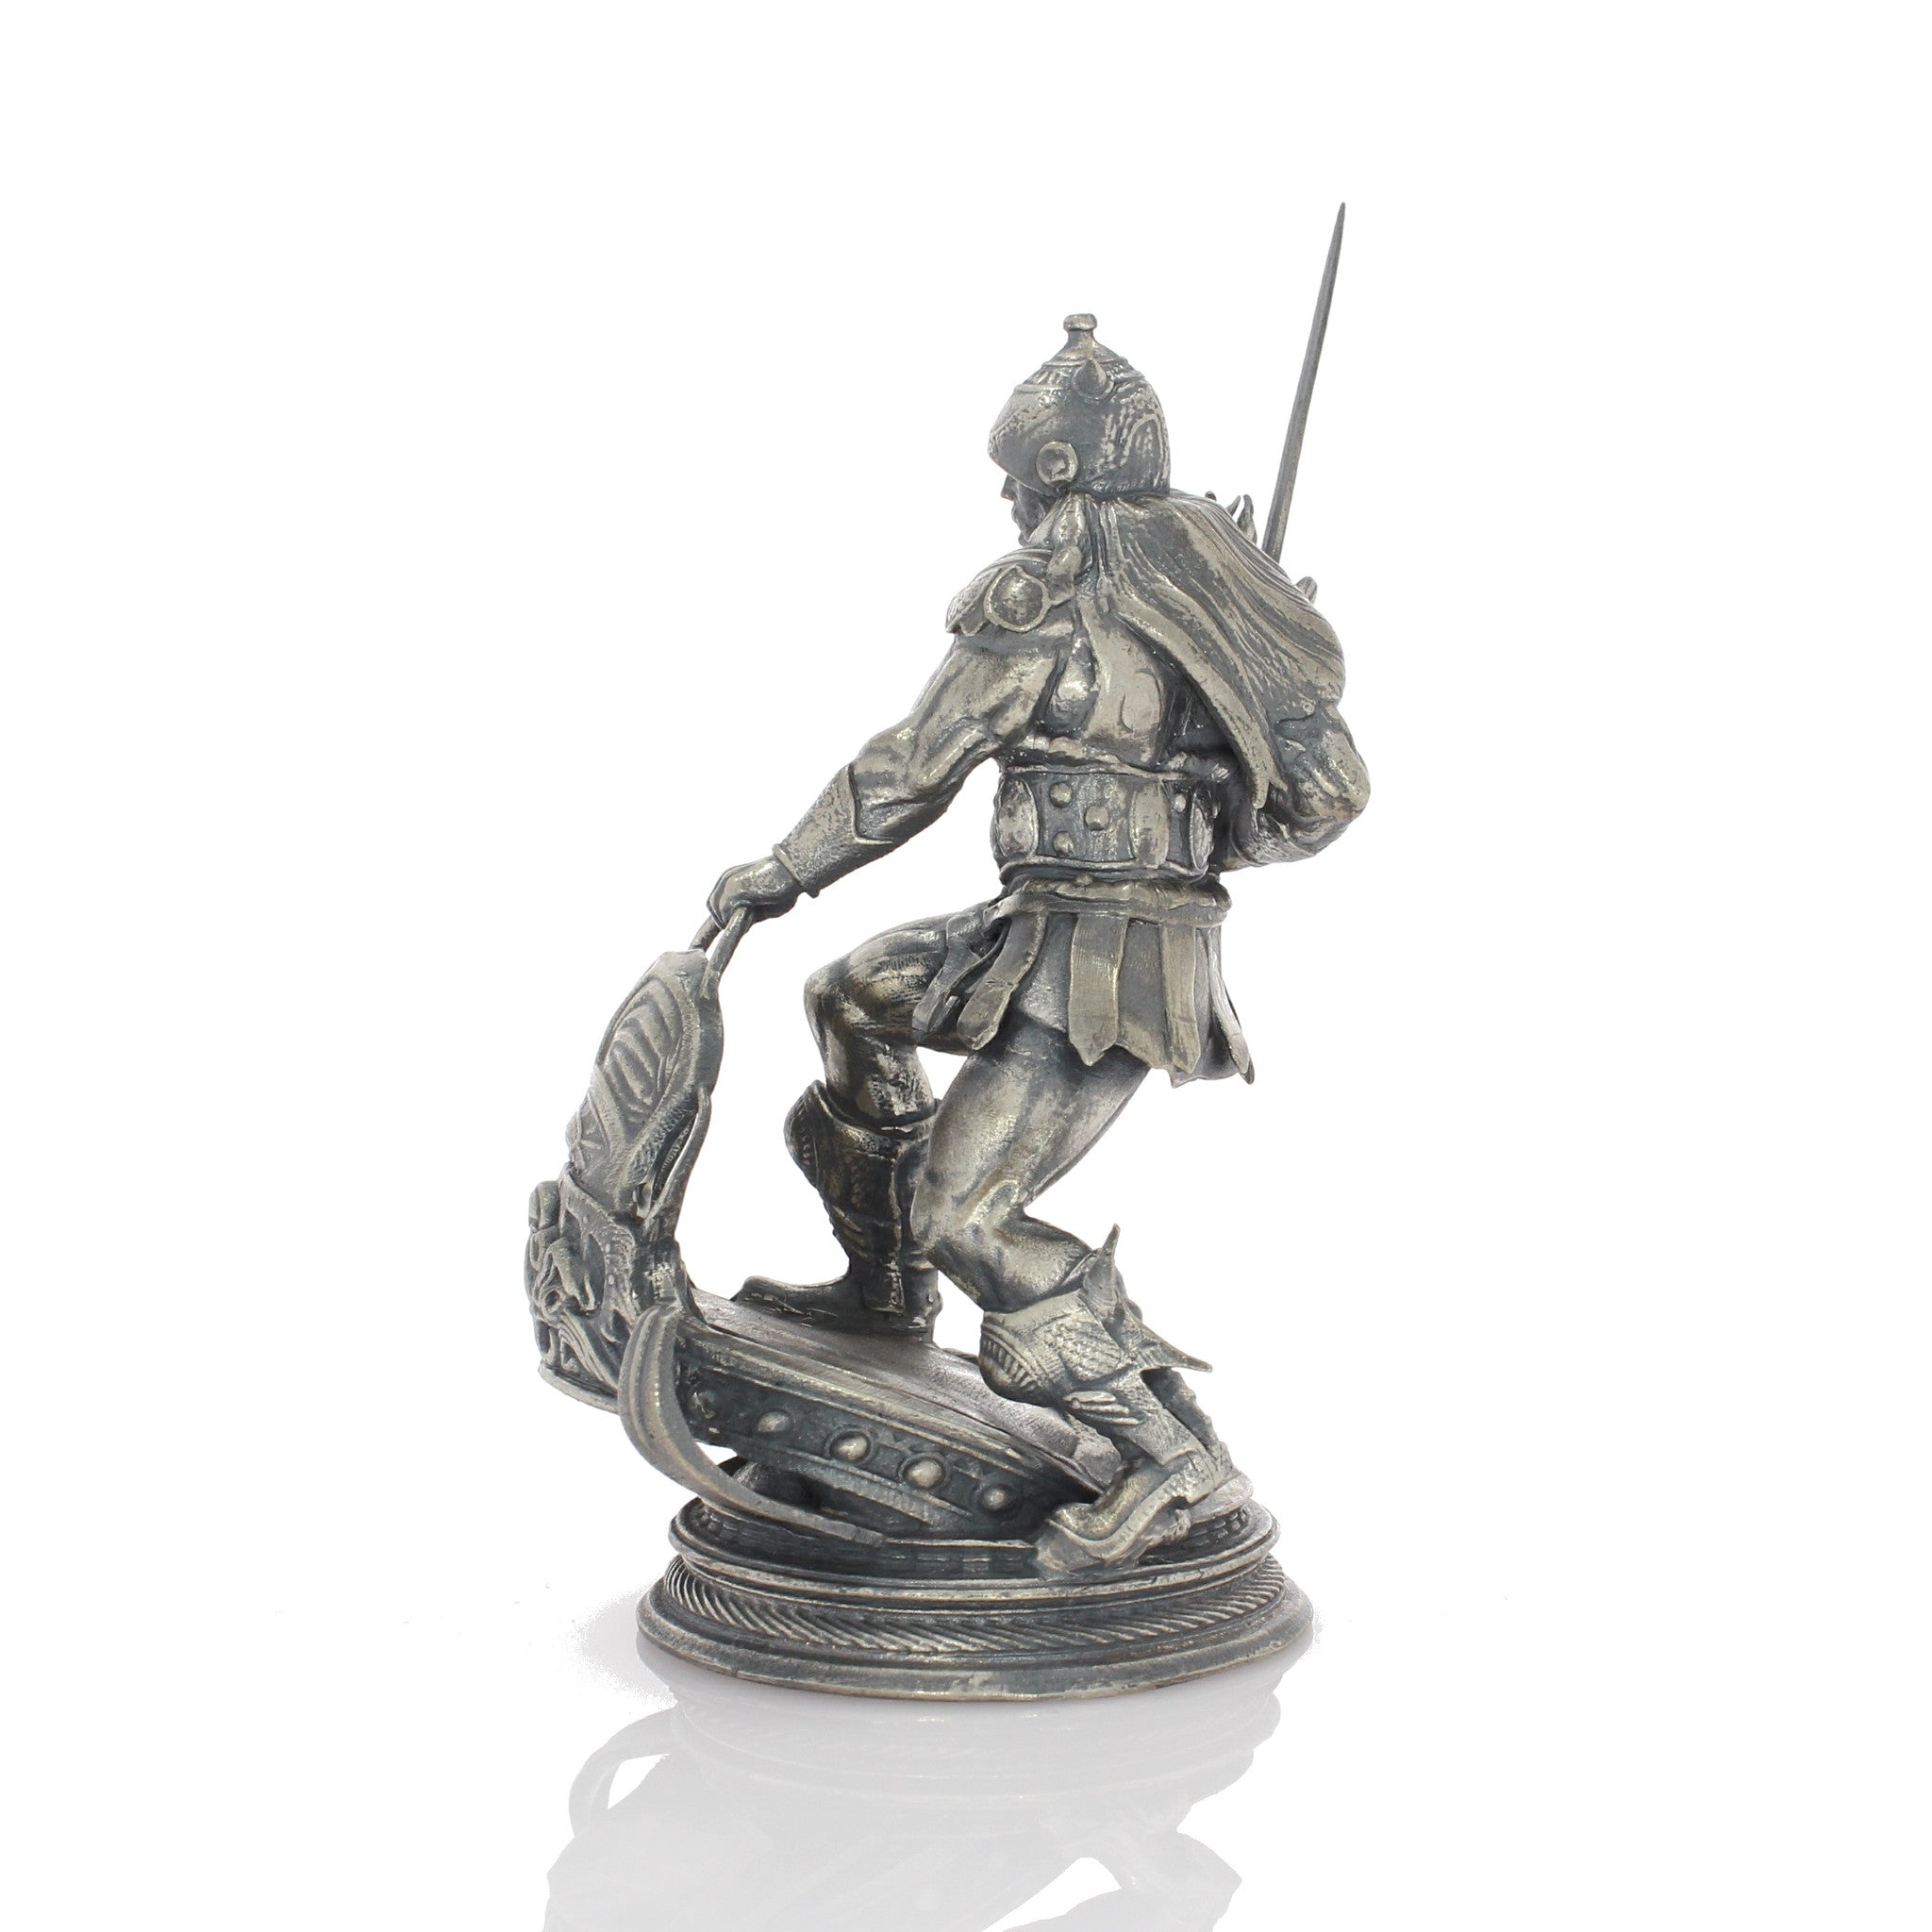 Products - Silver Statues